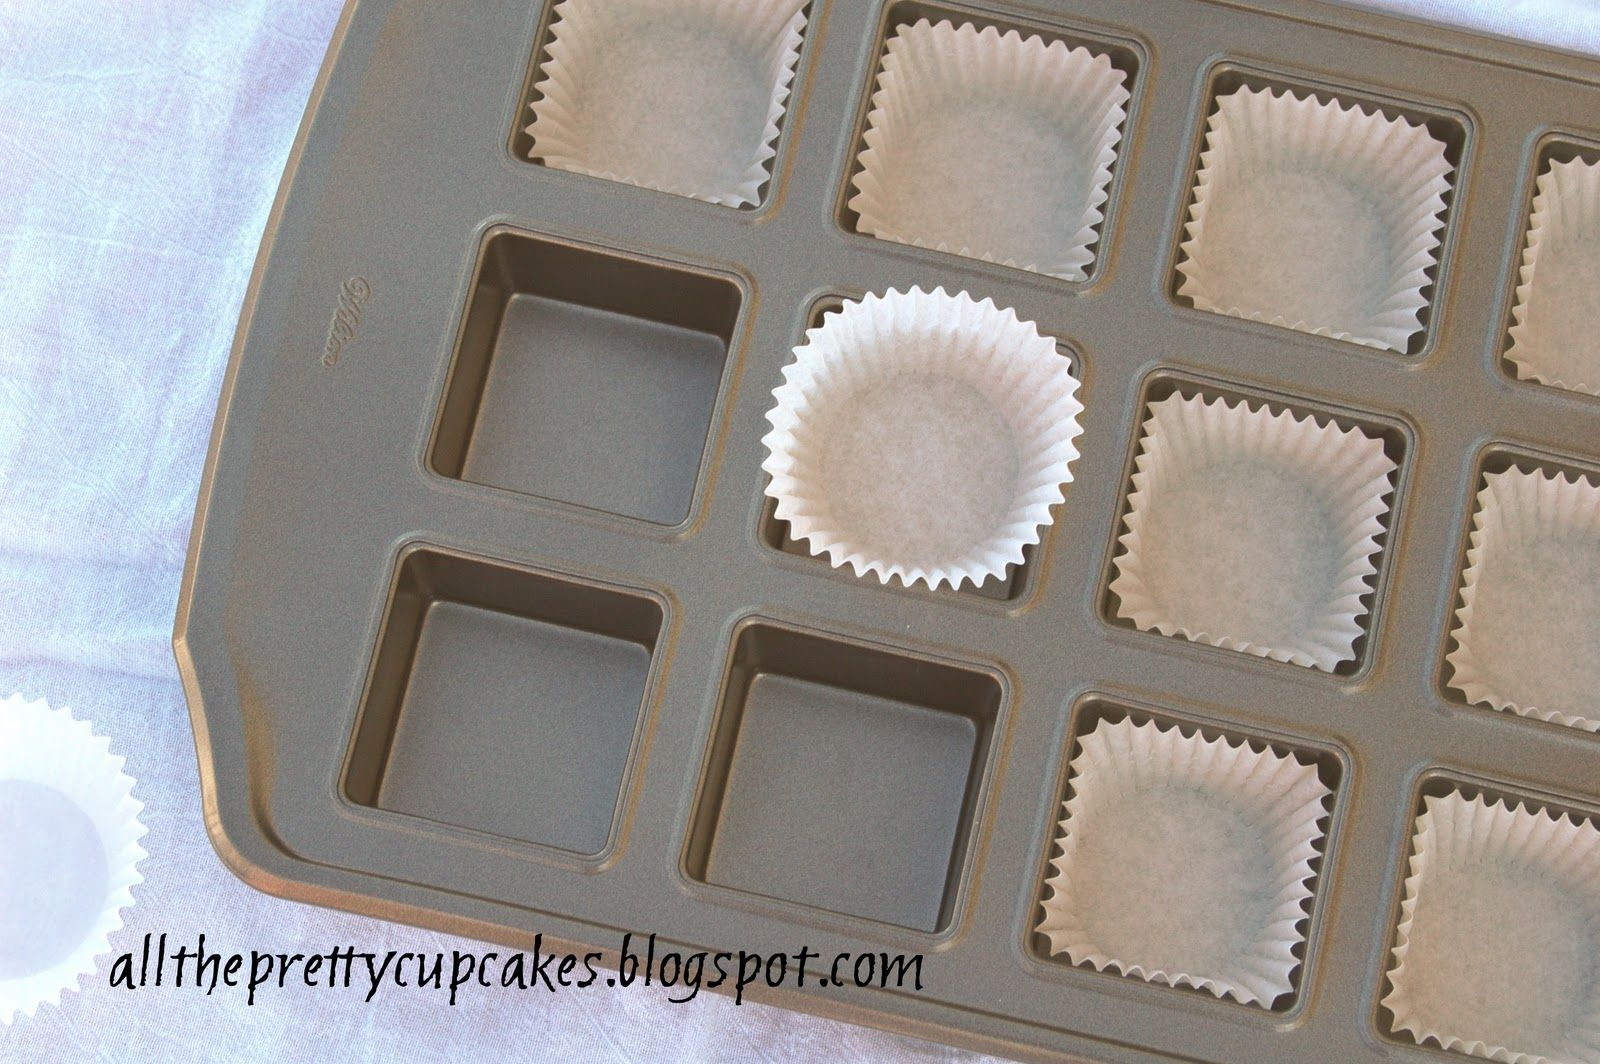 All the pretty cupcakes how to make square cupcakes